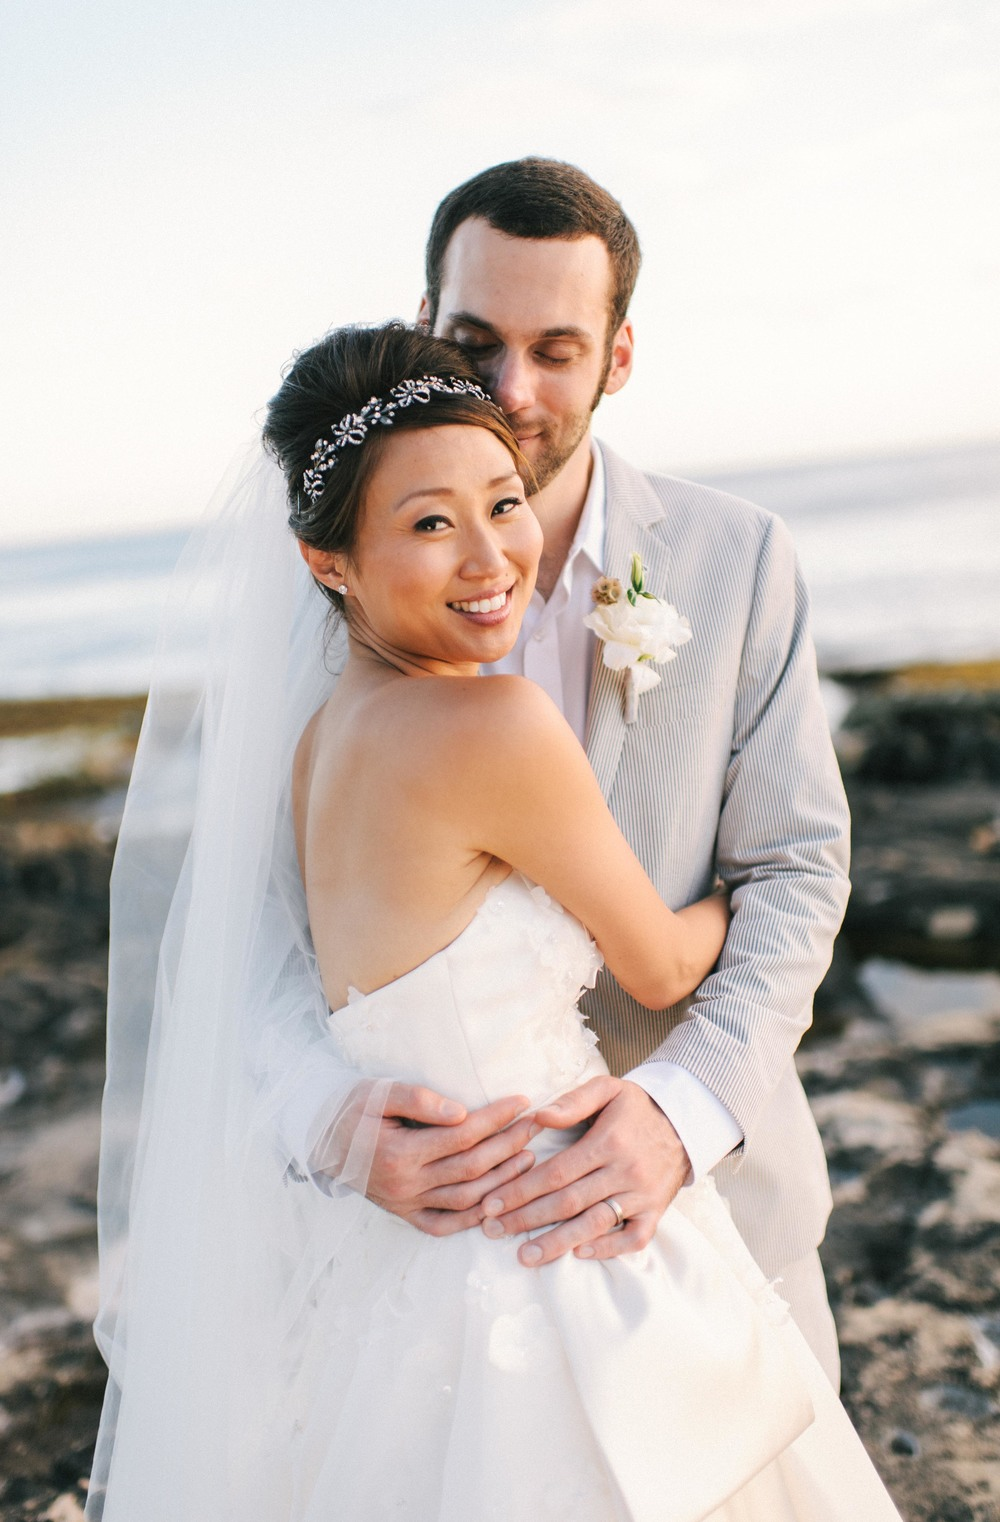 Michelle Garibay Events | Modern Vintage Hawaii Wedding | Oahu Destination Wedding | Peach and Gray Wedding | Sunset Beach Wedding